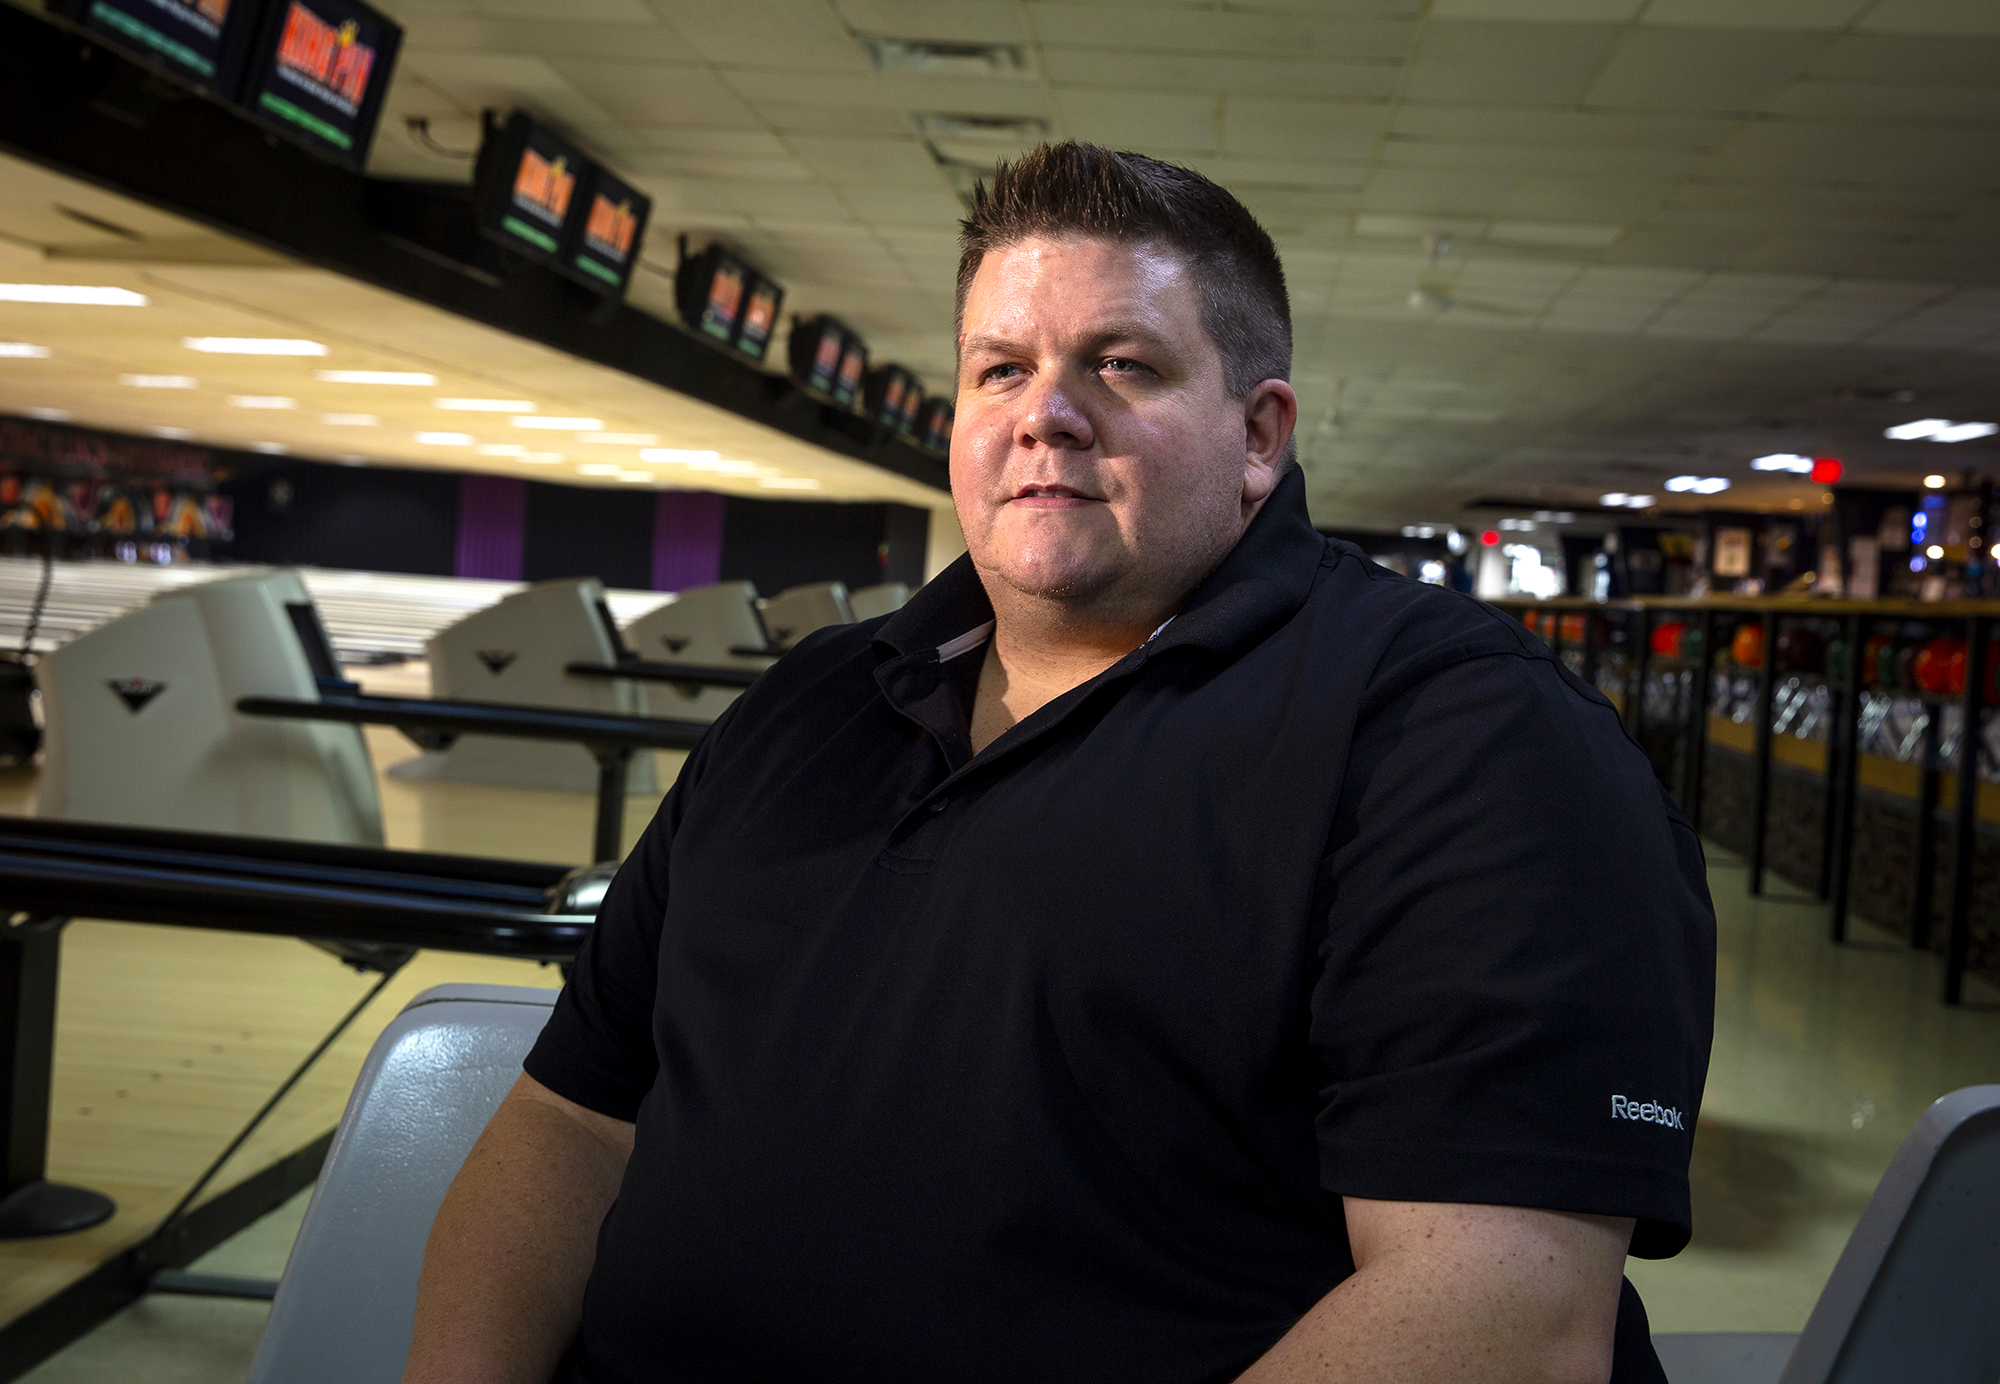 Bob Cole will be inducted into the Springfield Bowling Hall of Fame during a ceremony tonight at Northfield Inn Conference Center. His father, Al, who Bob bowled with often, will be inducted posthumously. Al Cole was killed in December as he tried to intervene in a physical confrontation between Andrew J. Brady and a woman.Bob Cole was photographed Thursday, Oct. 11, 2018 at King Pin Lanes in Springfield, Ill. [Rich Saal/The State Journal-Register]